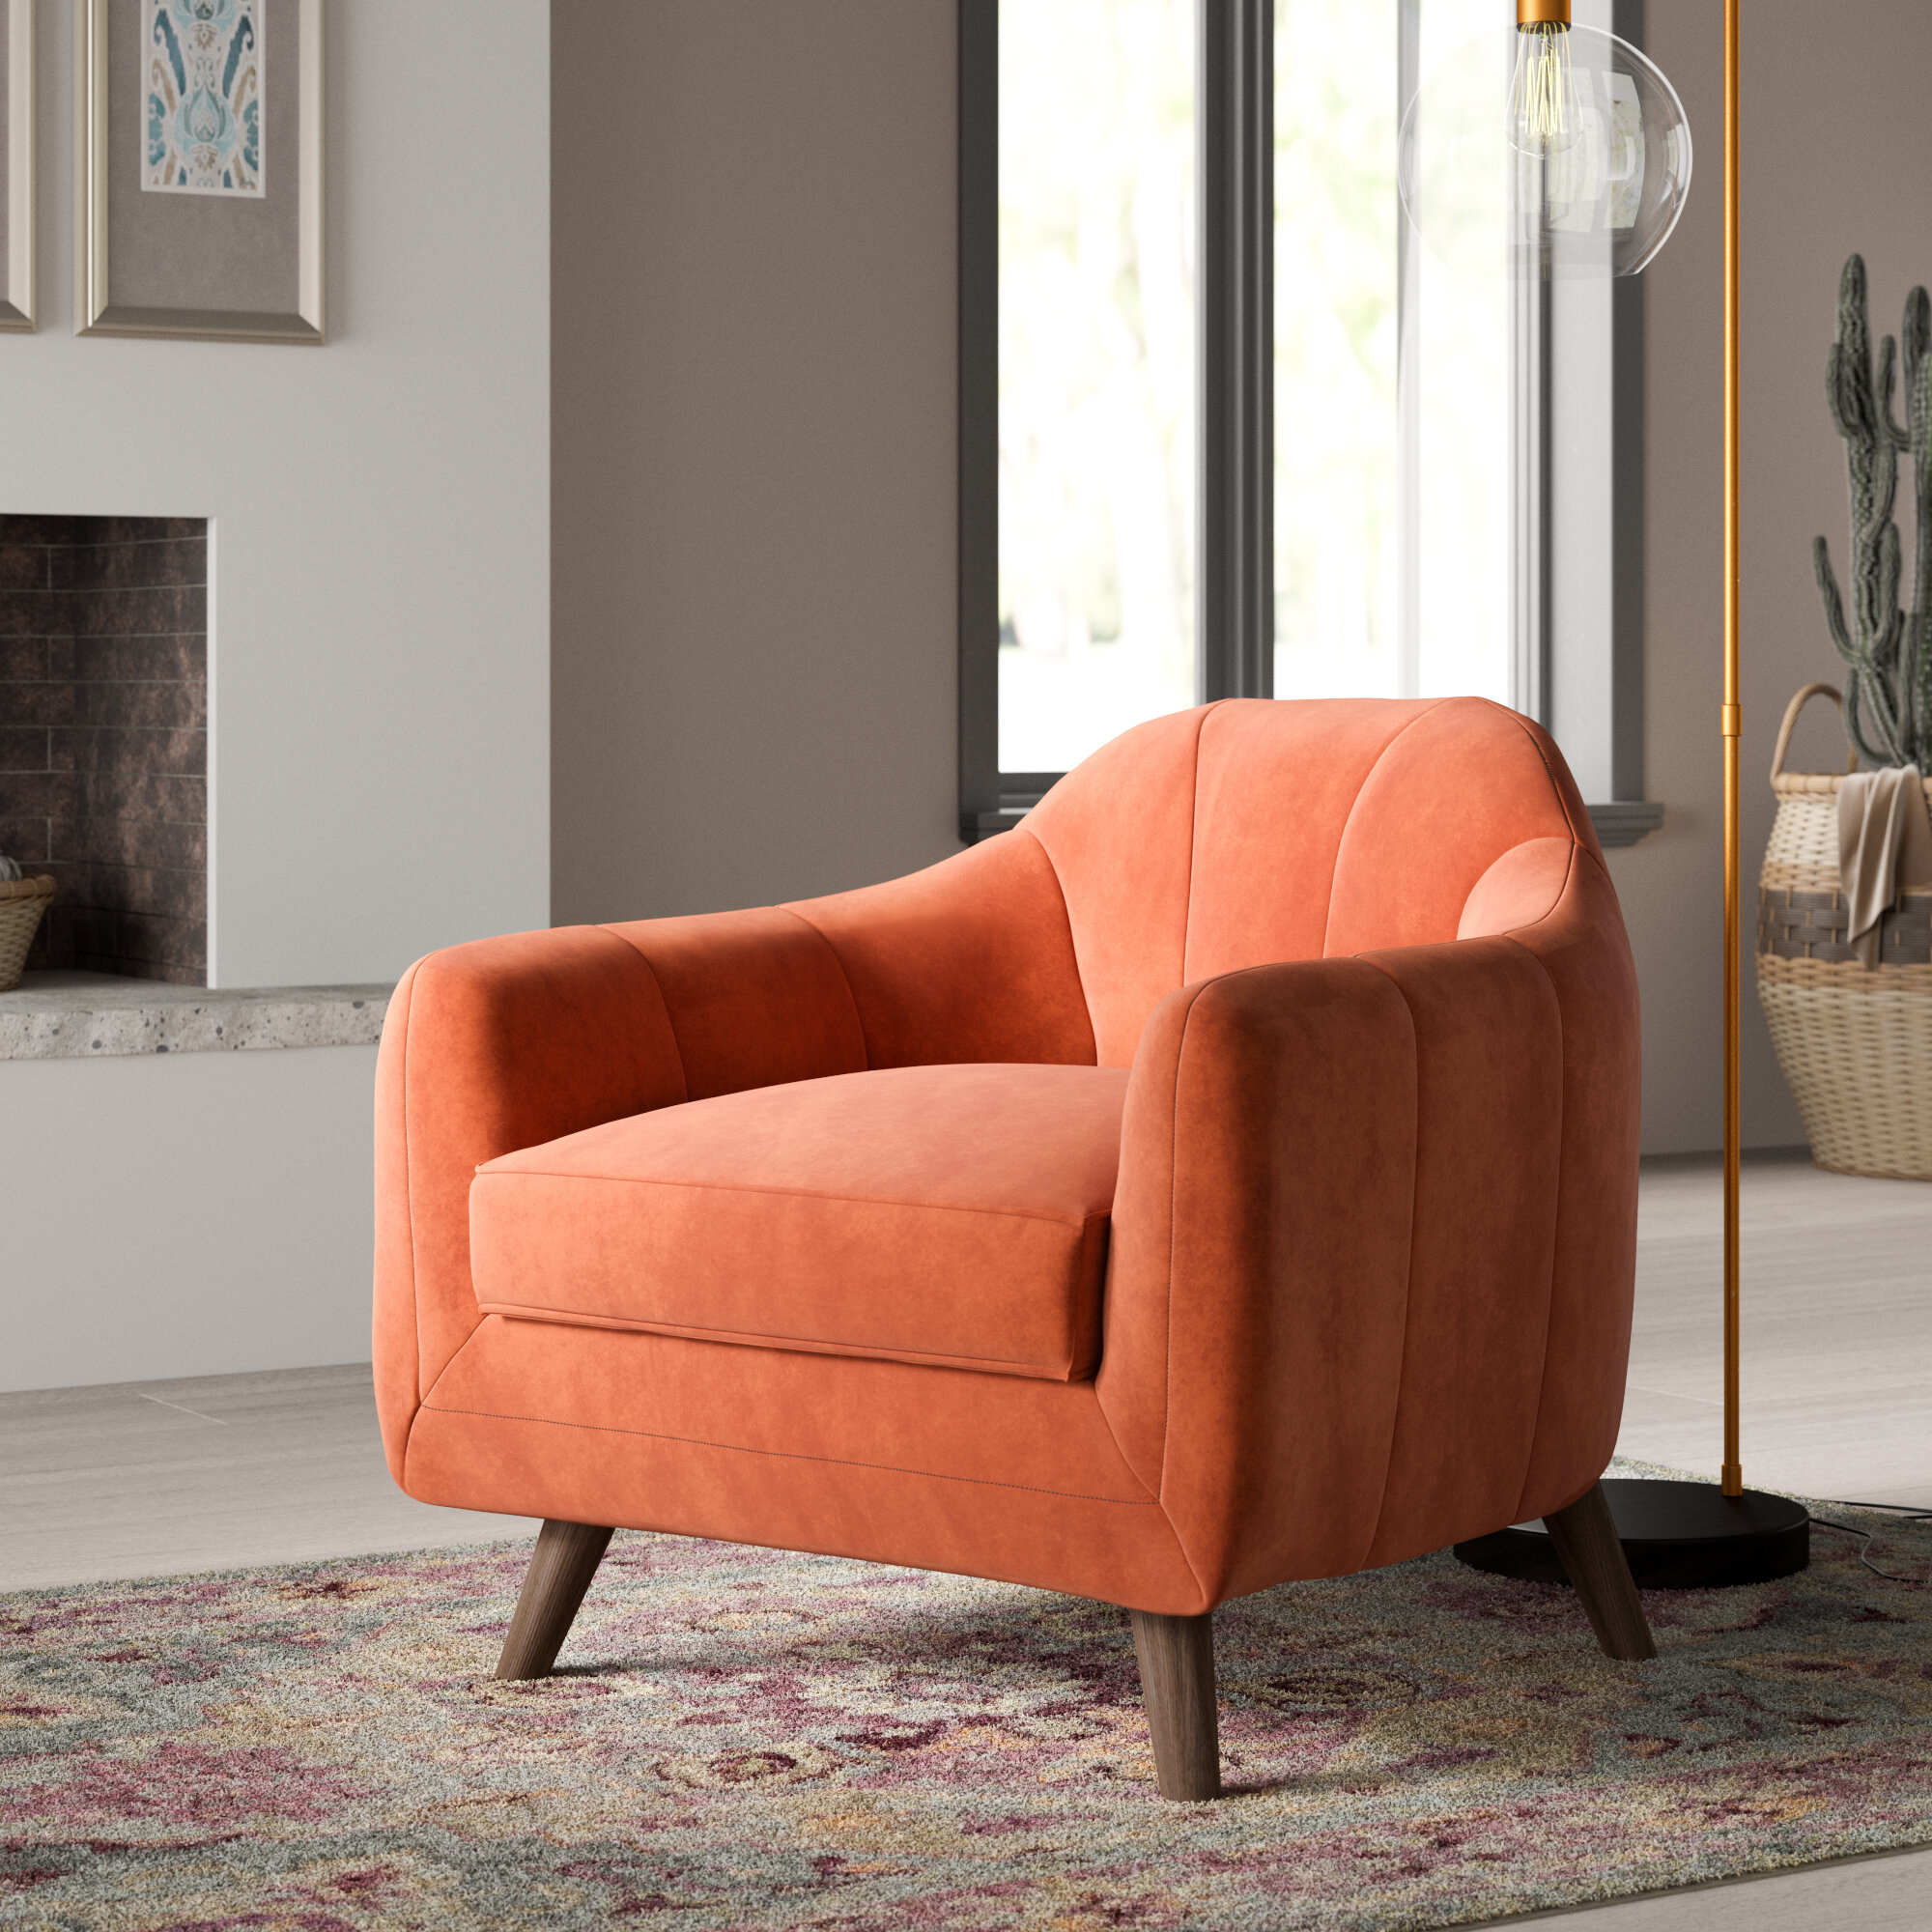 Brown Orange Accent Chairs You'Ll Love In 2021 | Wayfair Regarding Artressia Barrel Chairs (View 6 of 15)